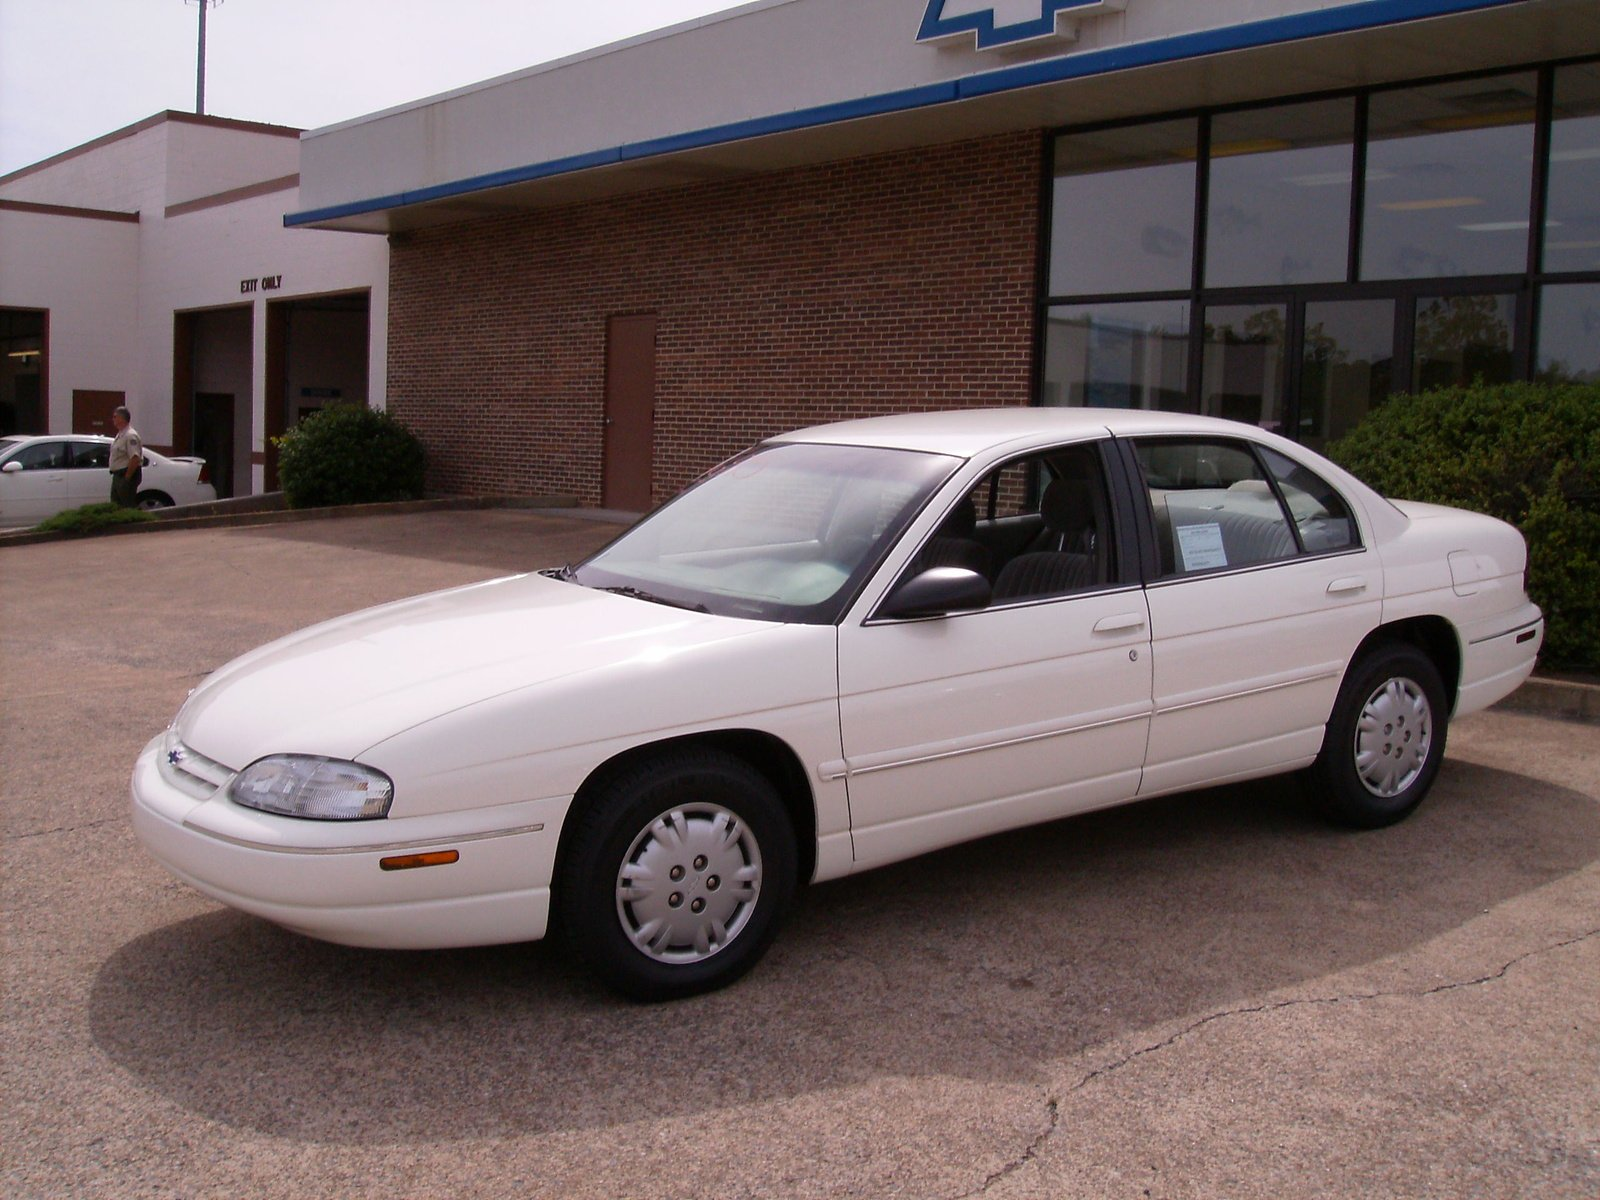 Pictures of chevrolet lumina #11